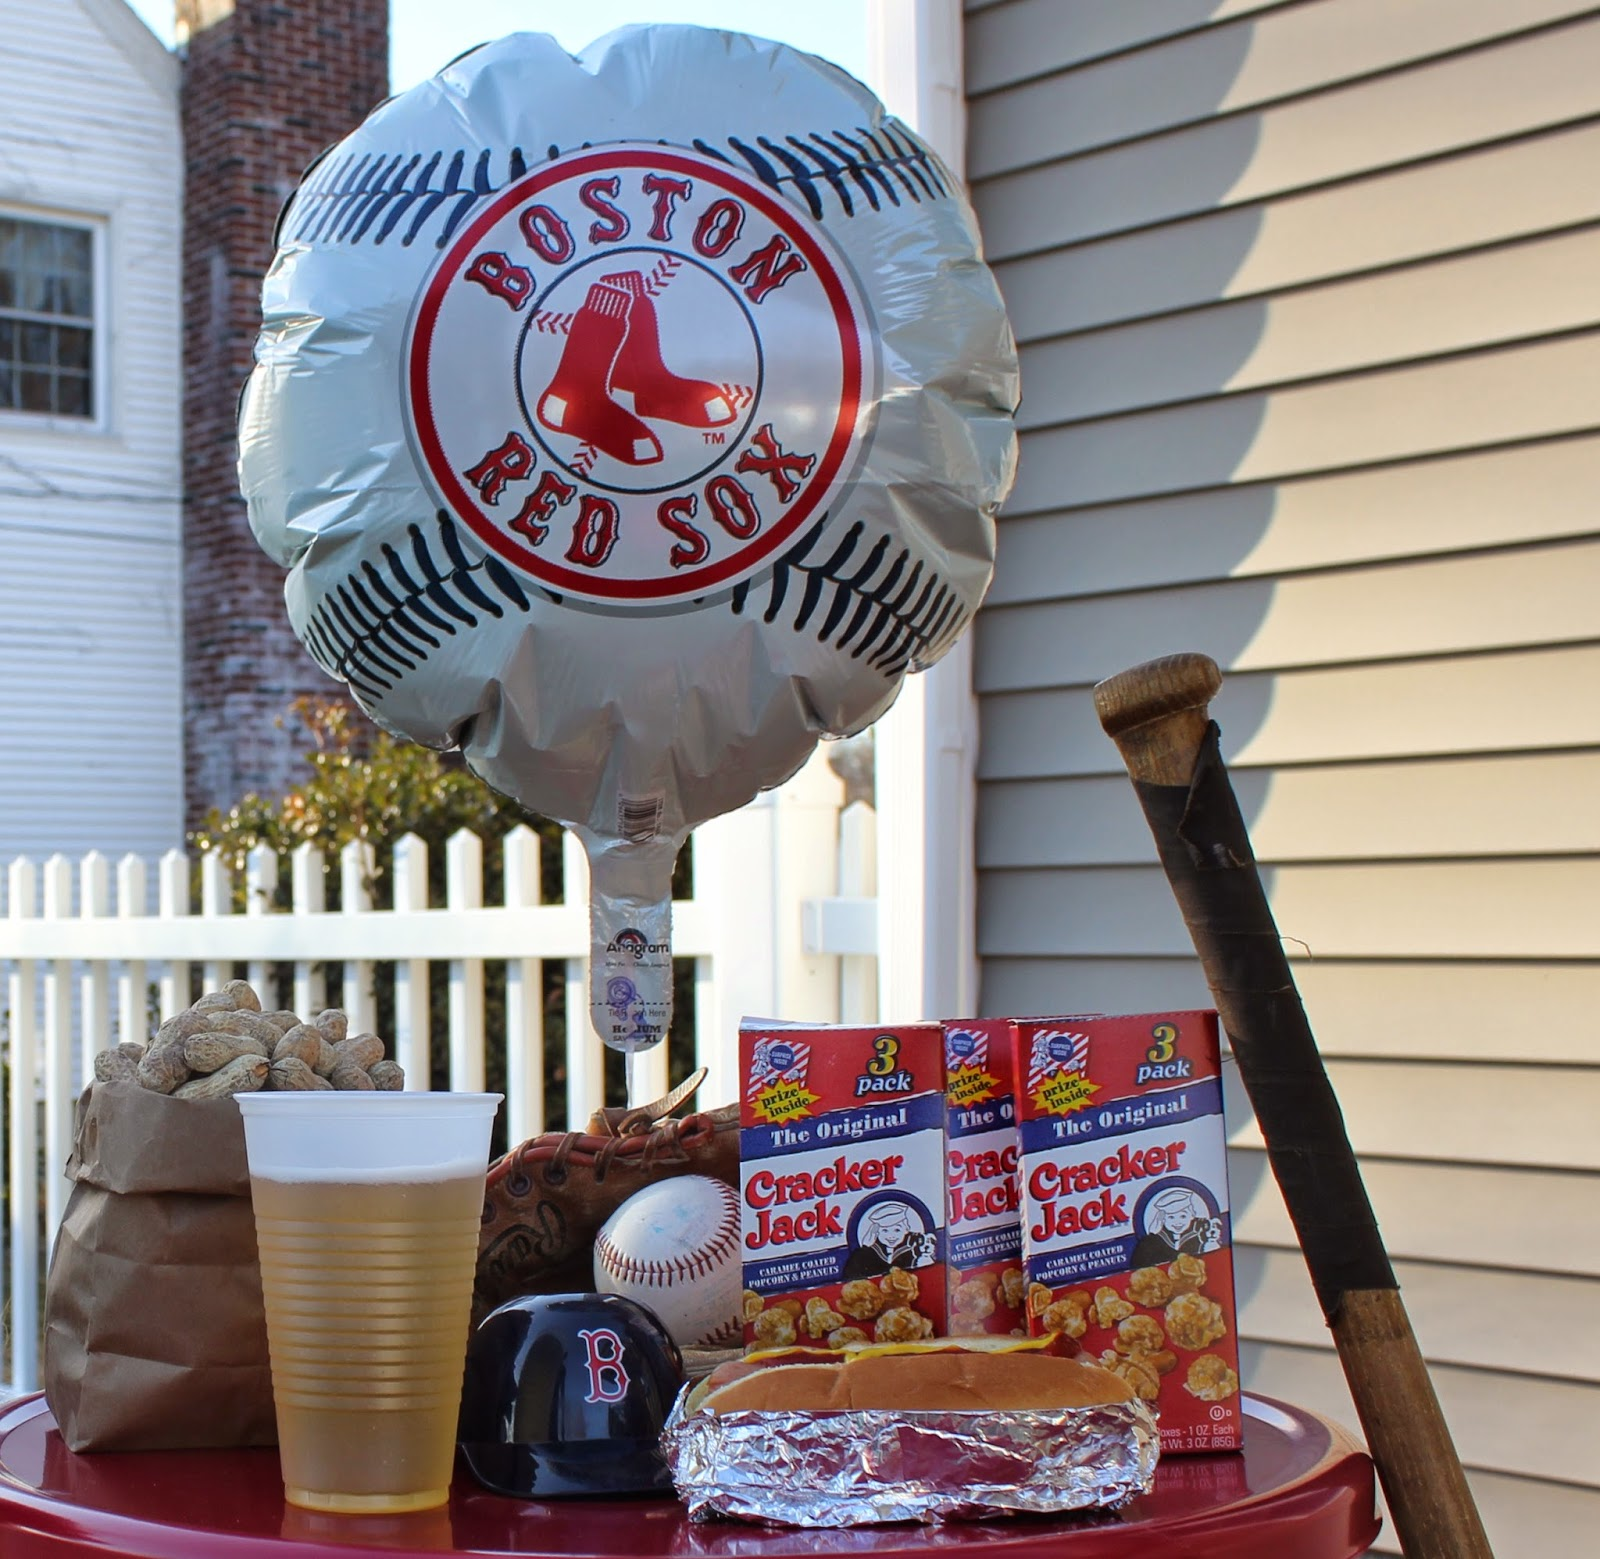 Boston Red Sox, ballpark food, fenway frank, cracker jacks, peanuts